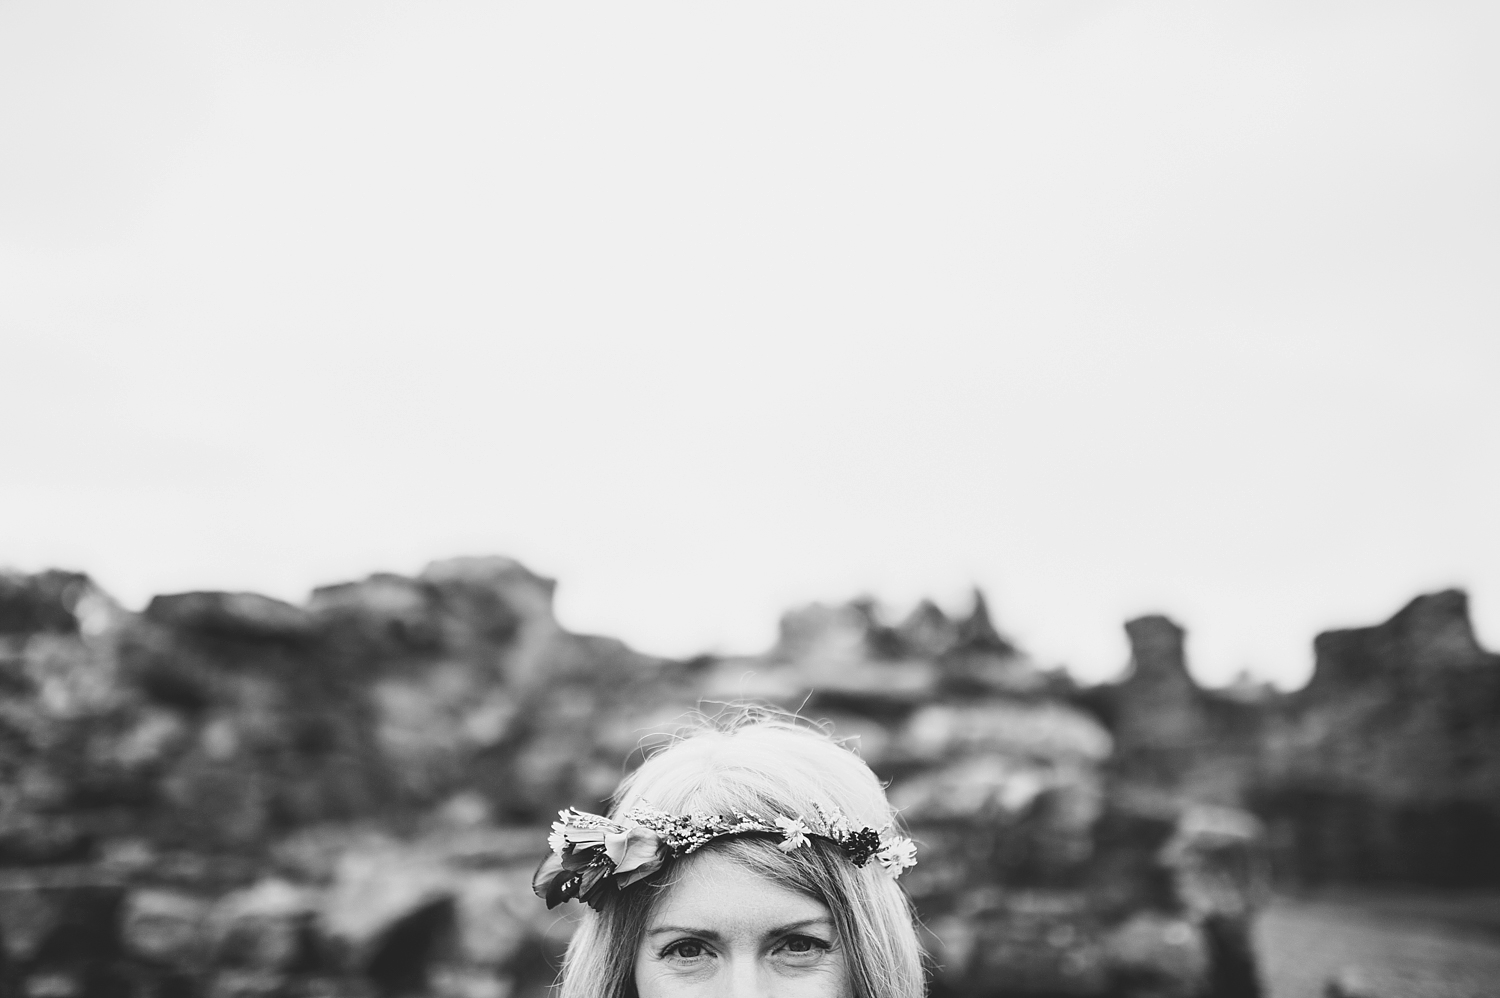 5571-lisa-devine-photography-alternative-stylish-creative-wedding-photography-glasgow-scotland-uk.JPG